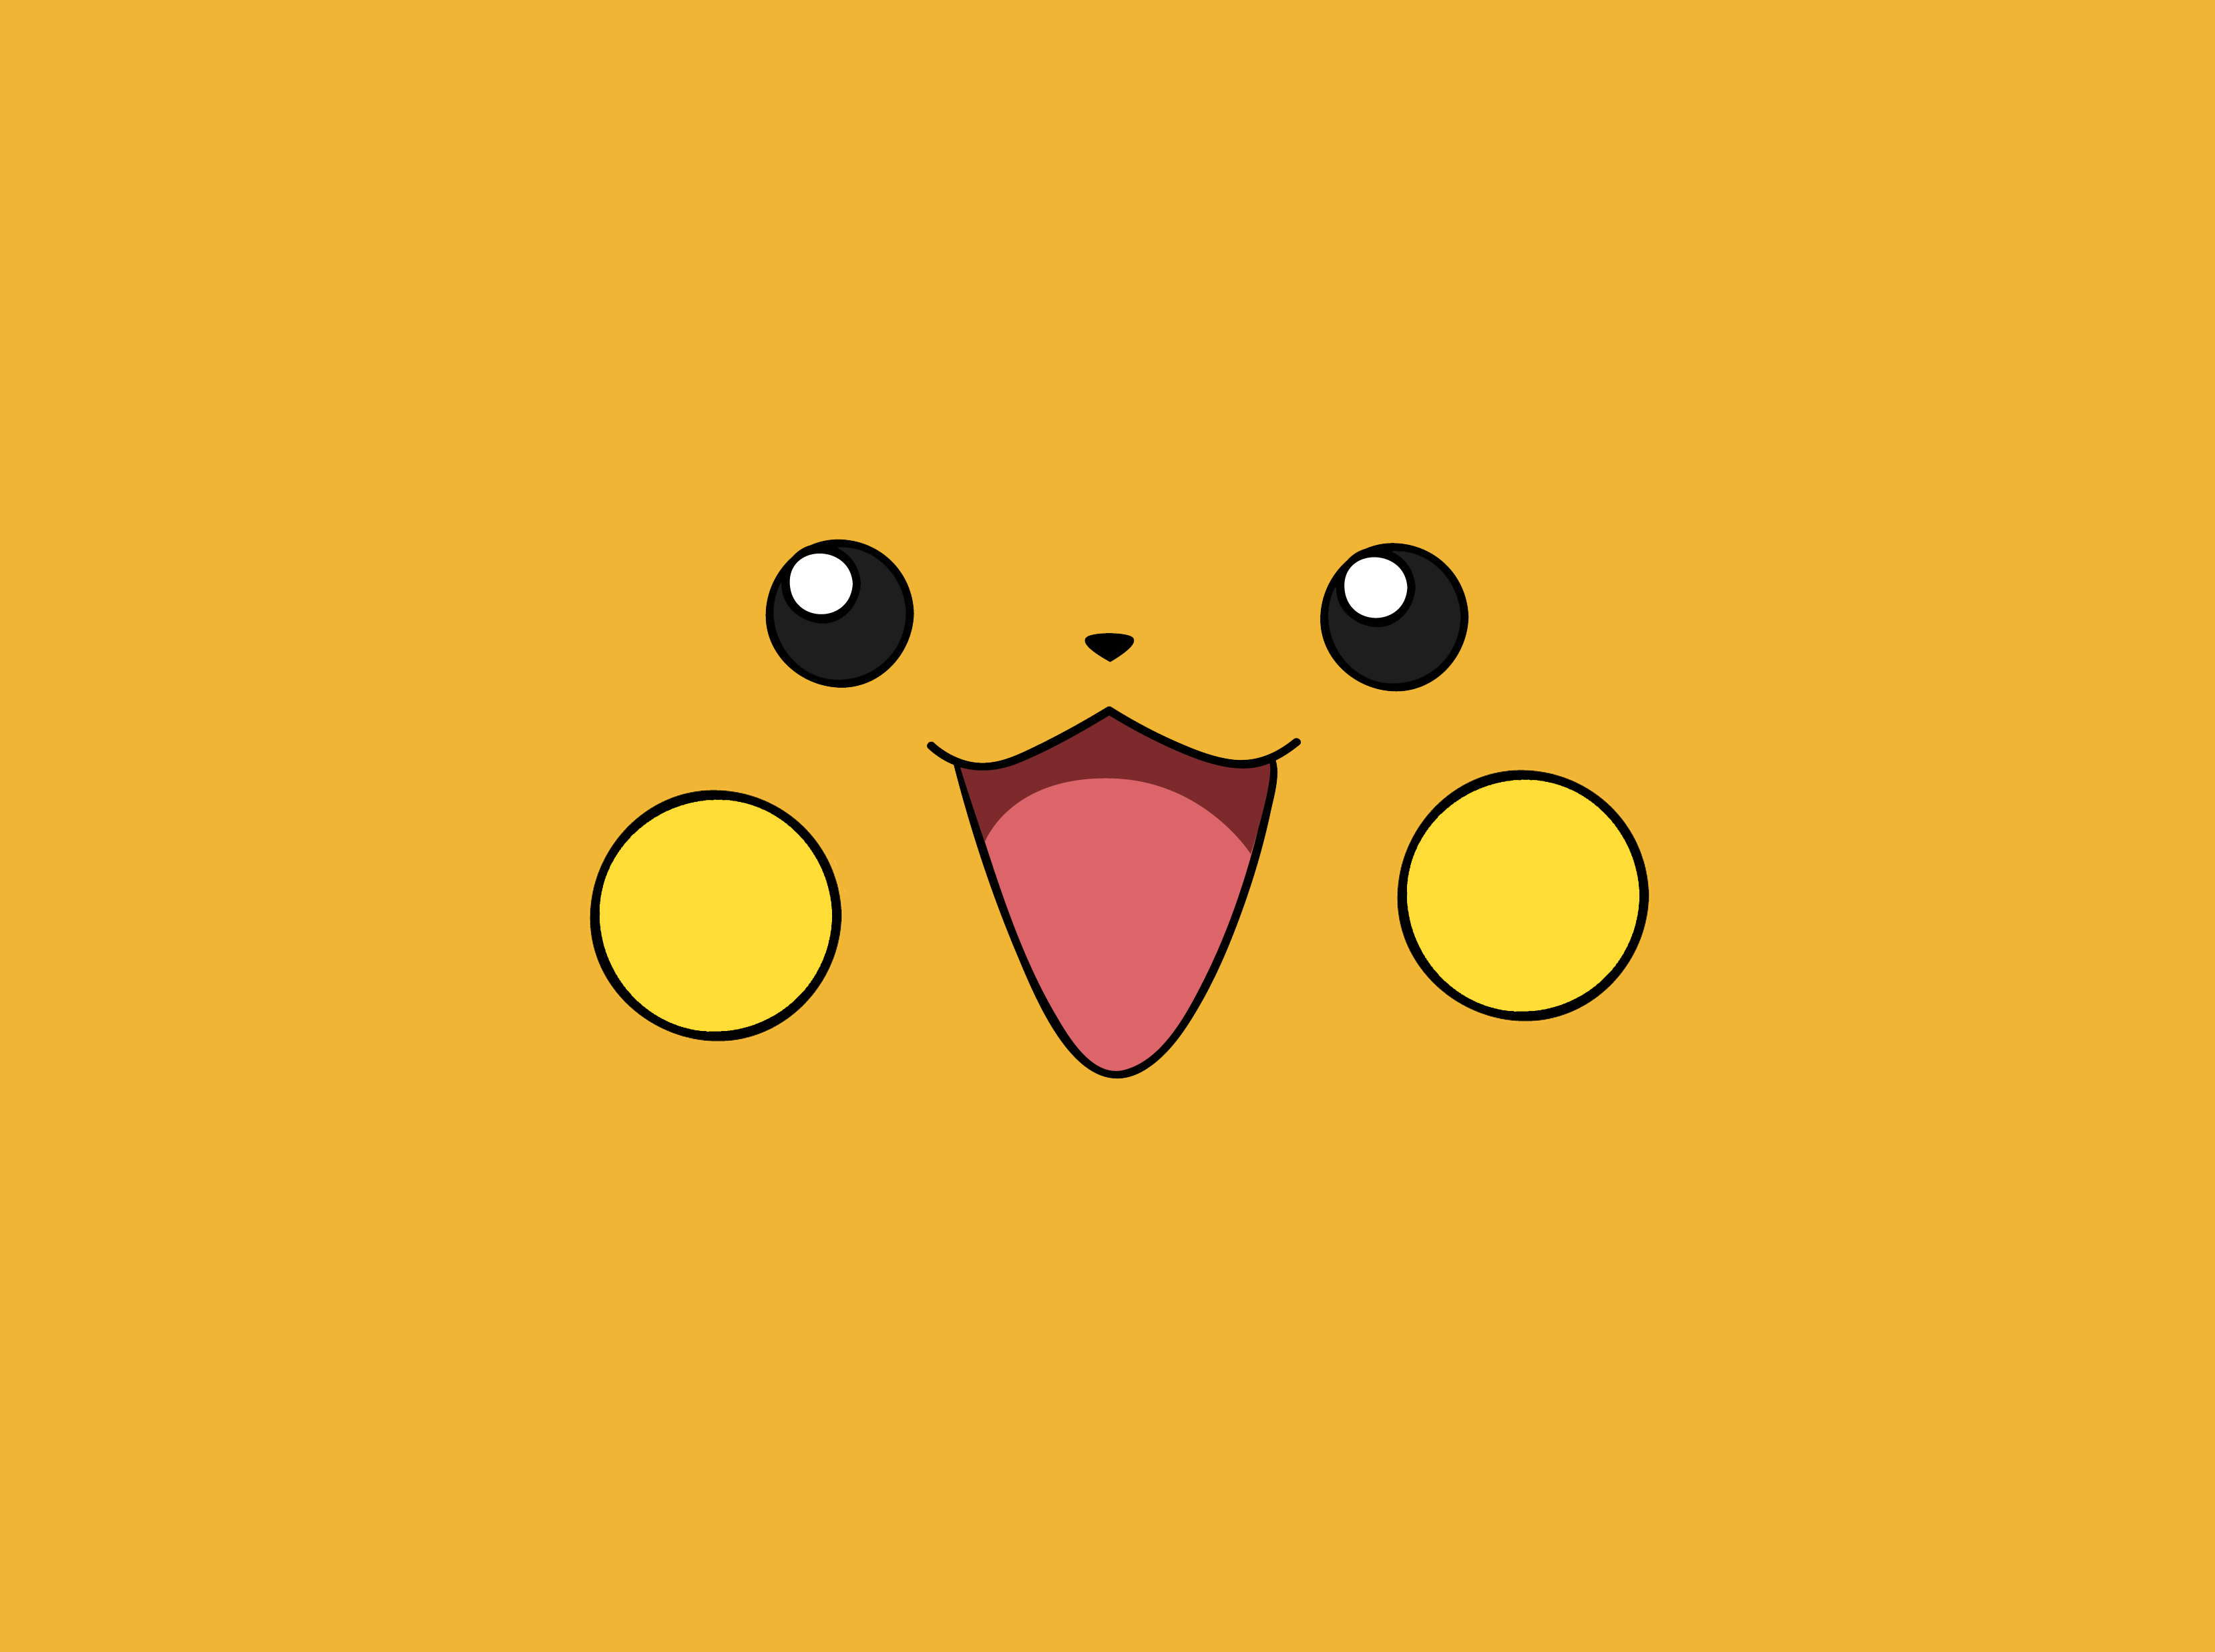 Pokemon   Pikachu Wallpaper HR Just Wallpaperz 3317x2474